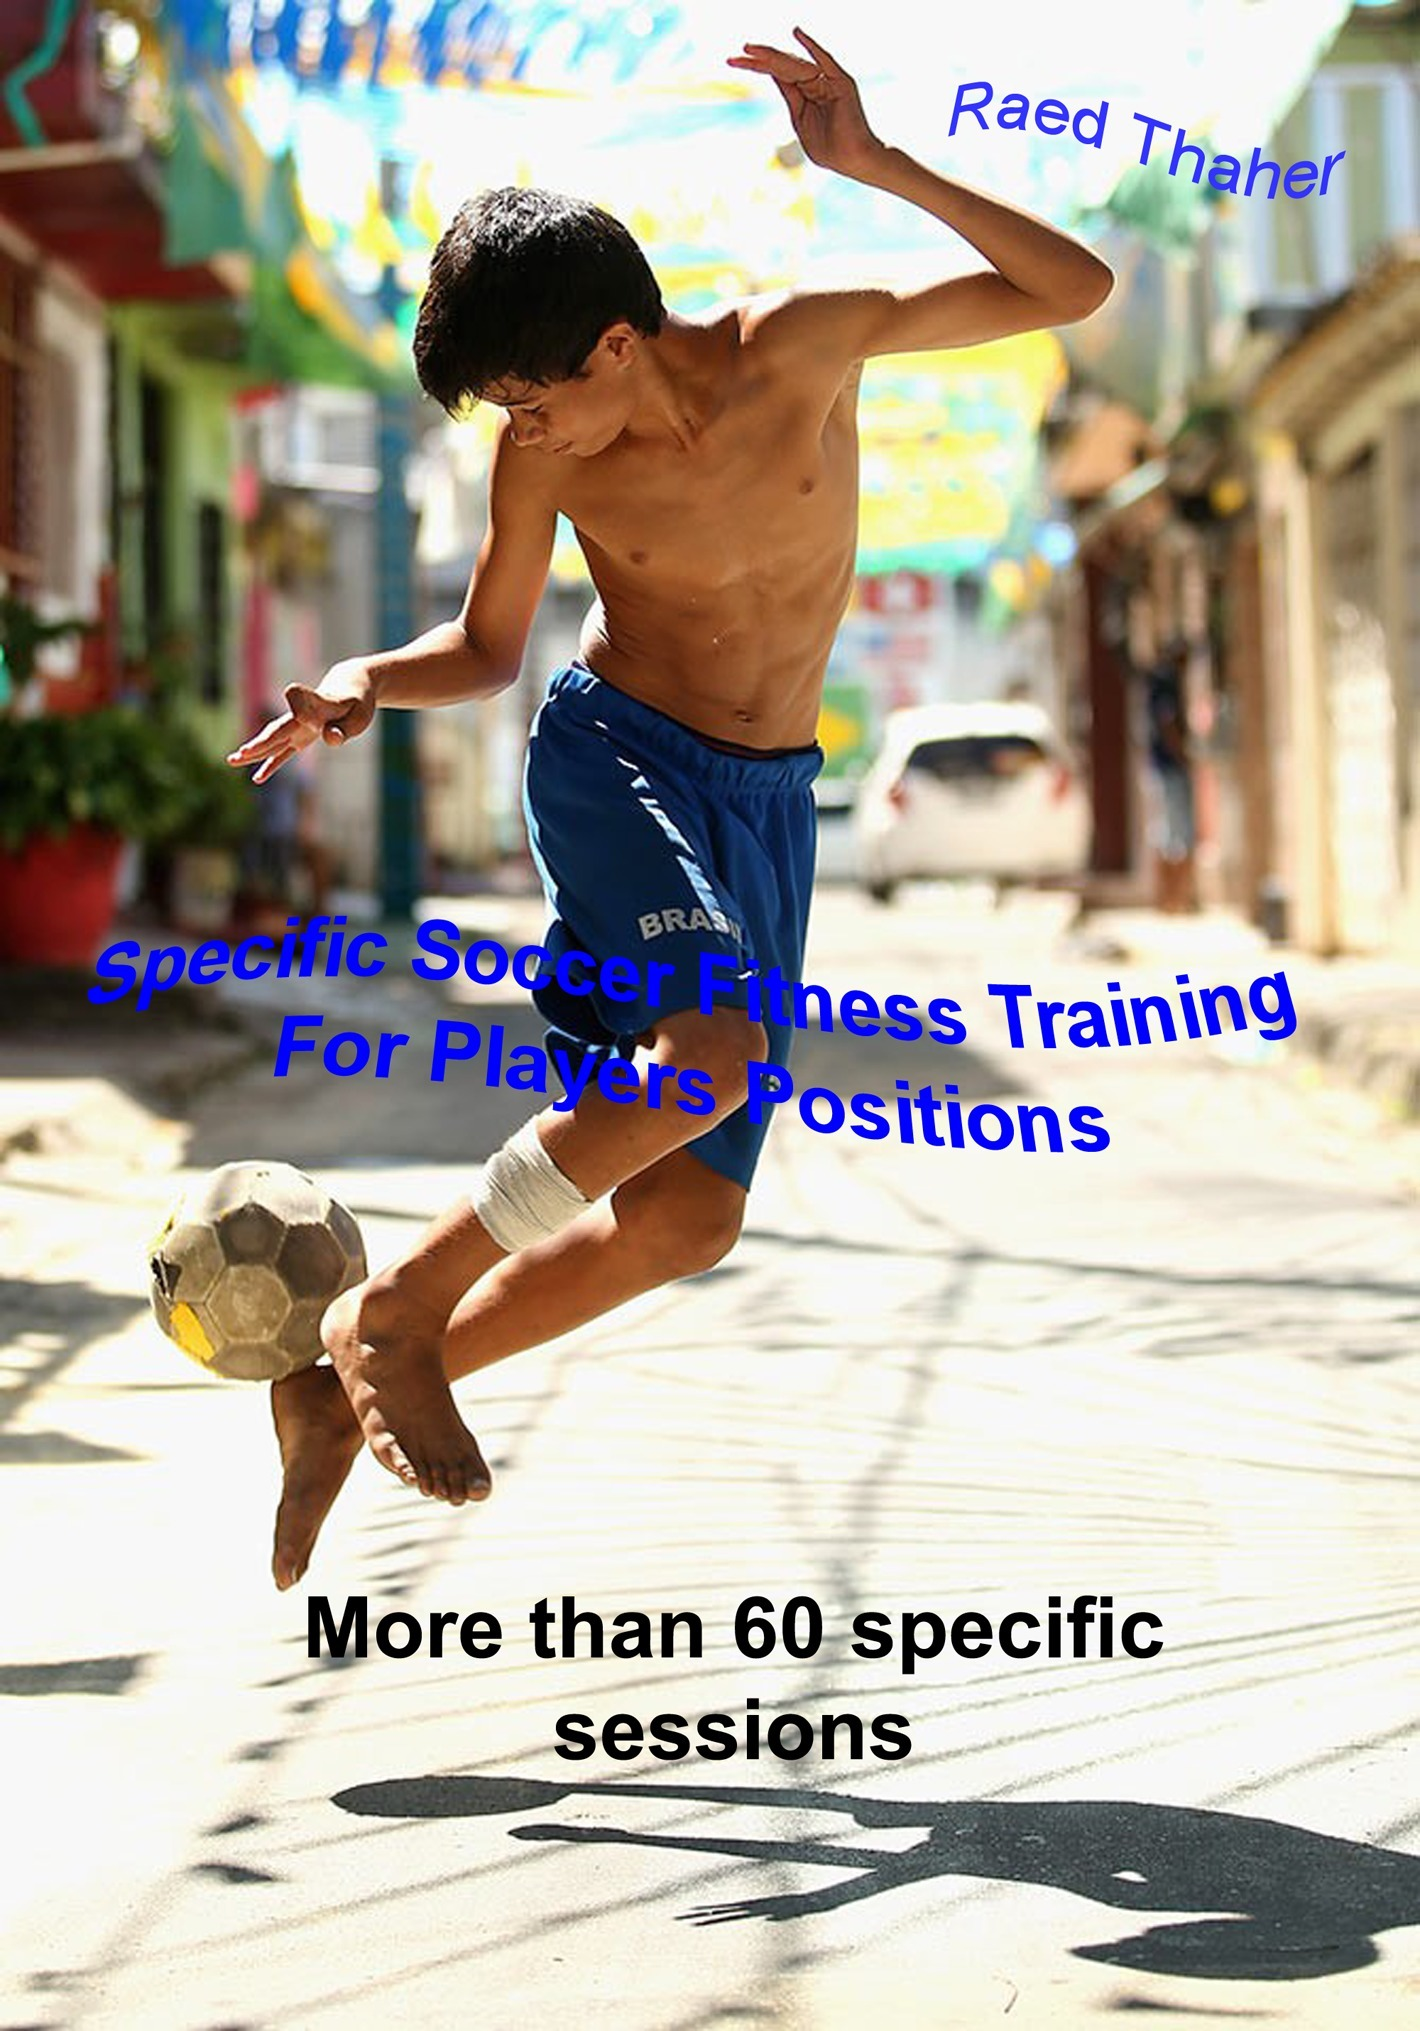 Specific Soccer Fitness Training For Players Positions